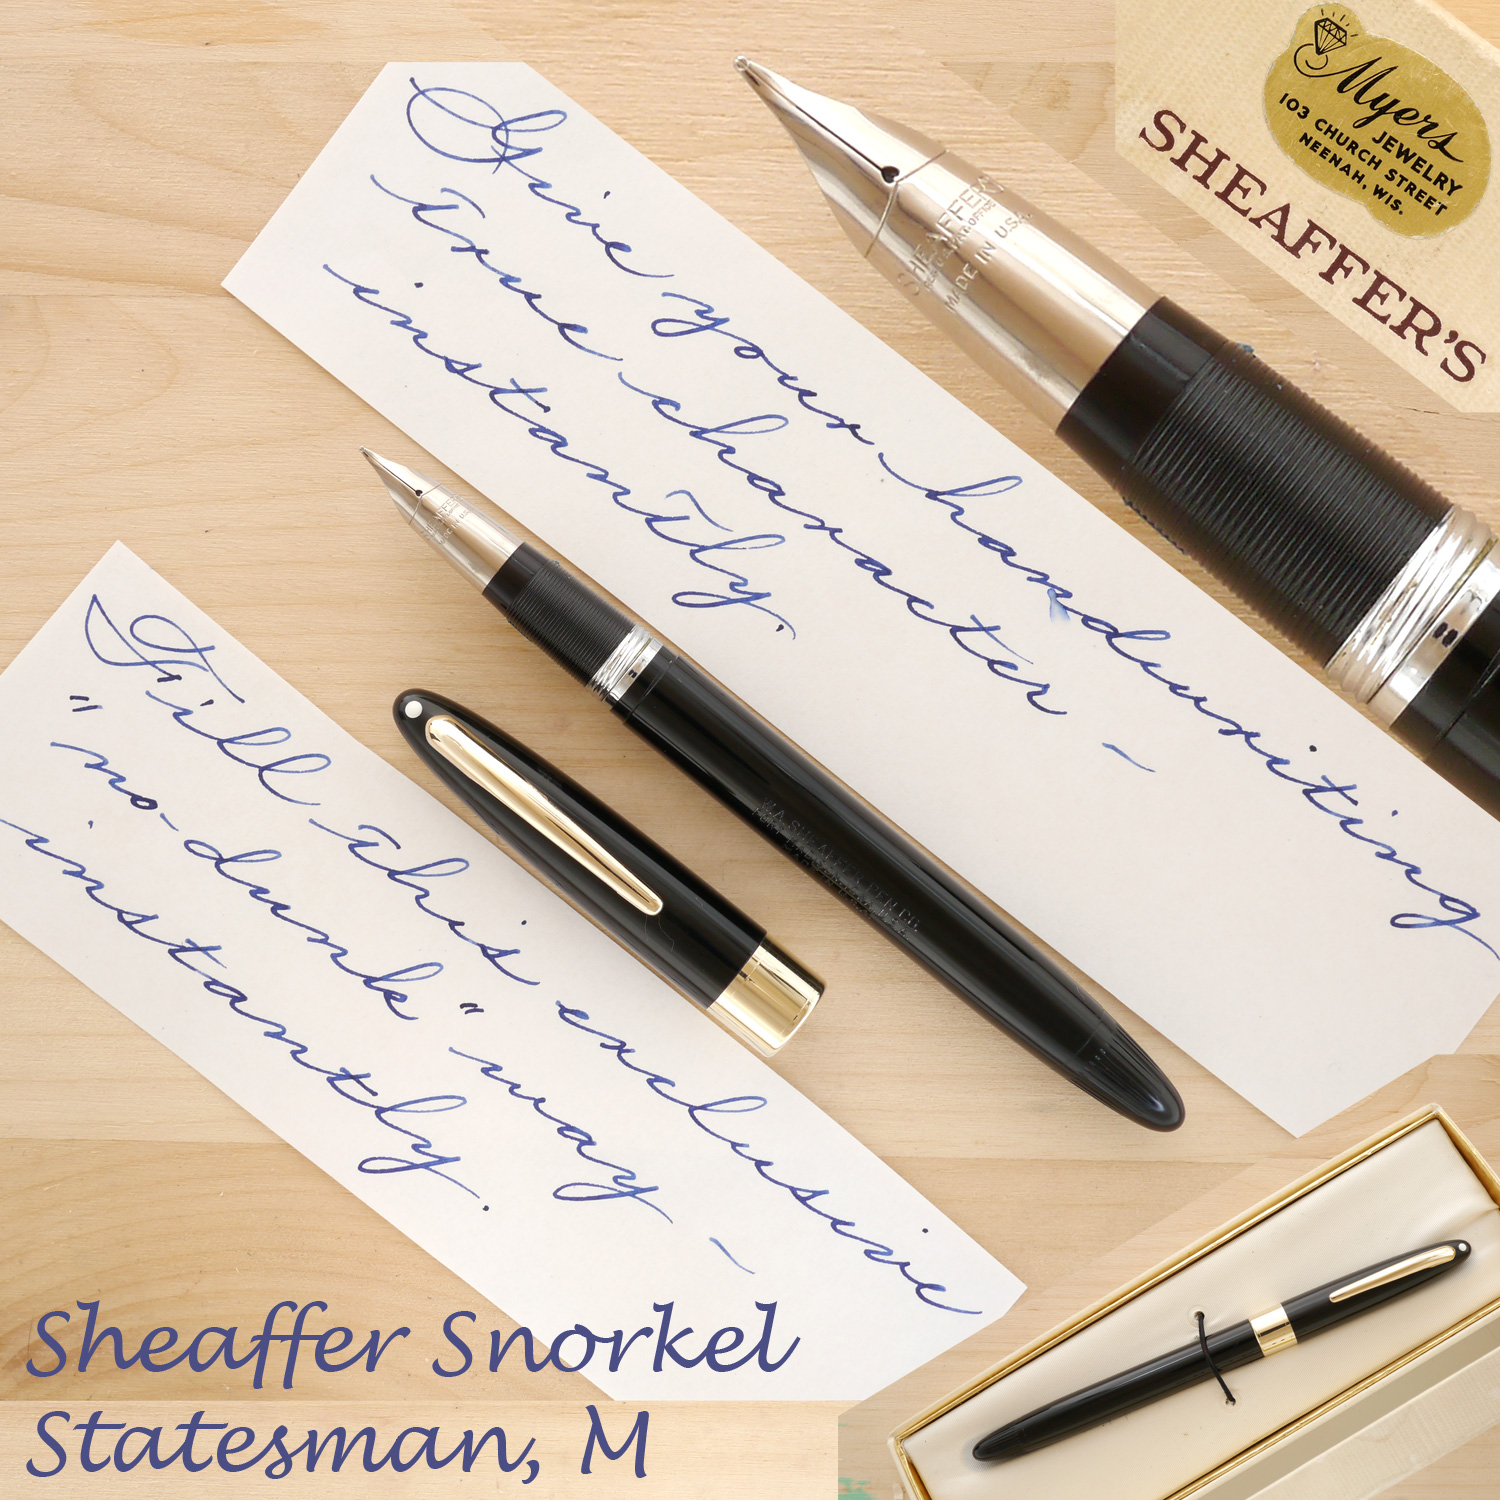 Sheaffer Snorkel Statesman, Black, M, Boxed